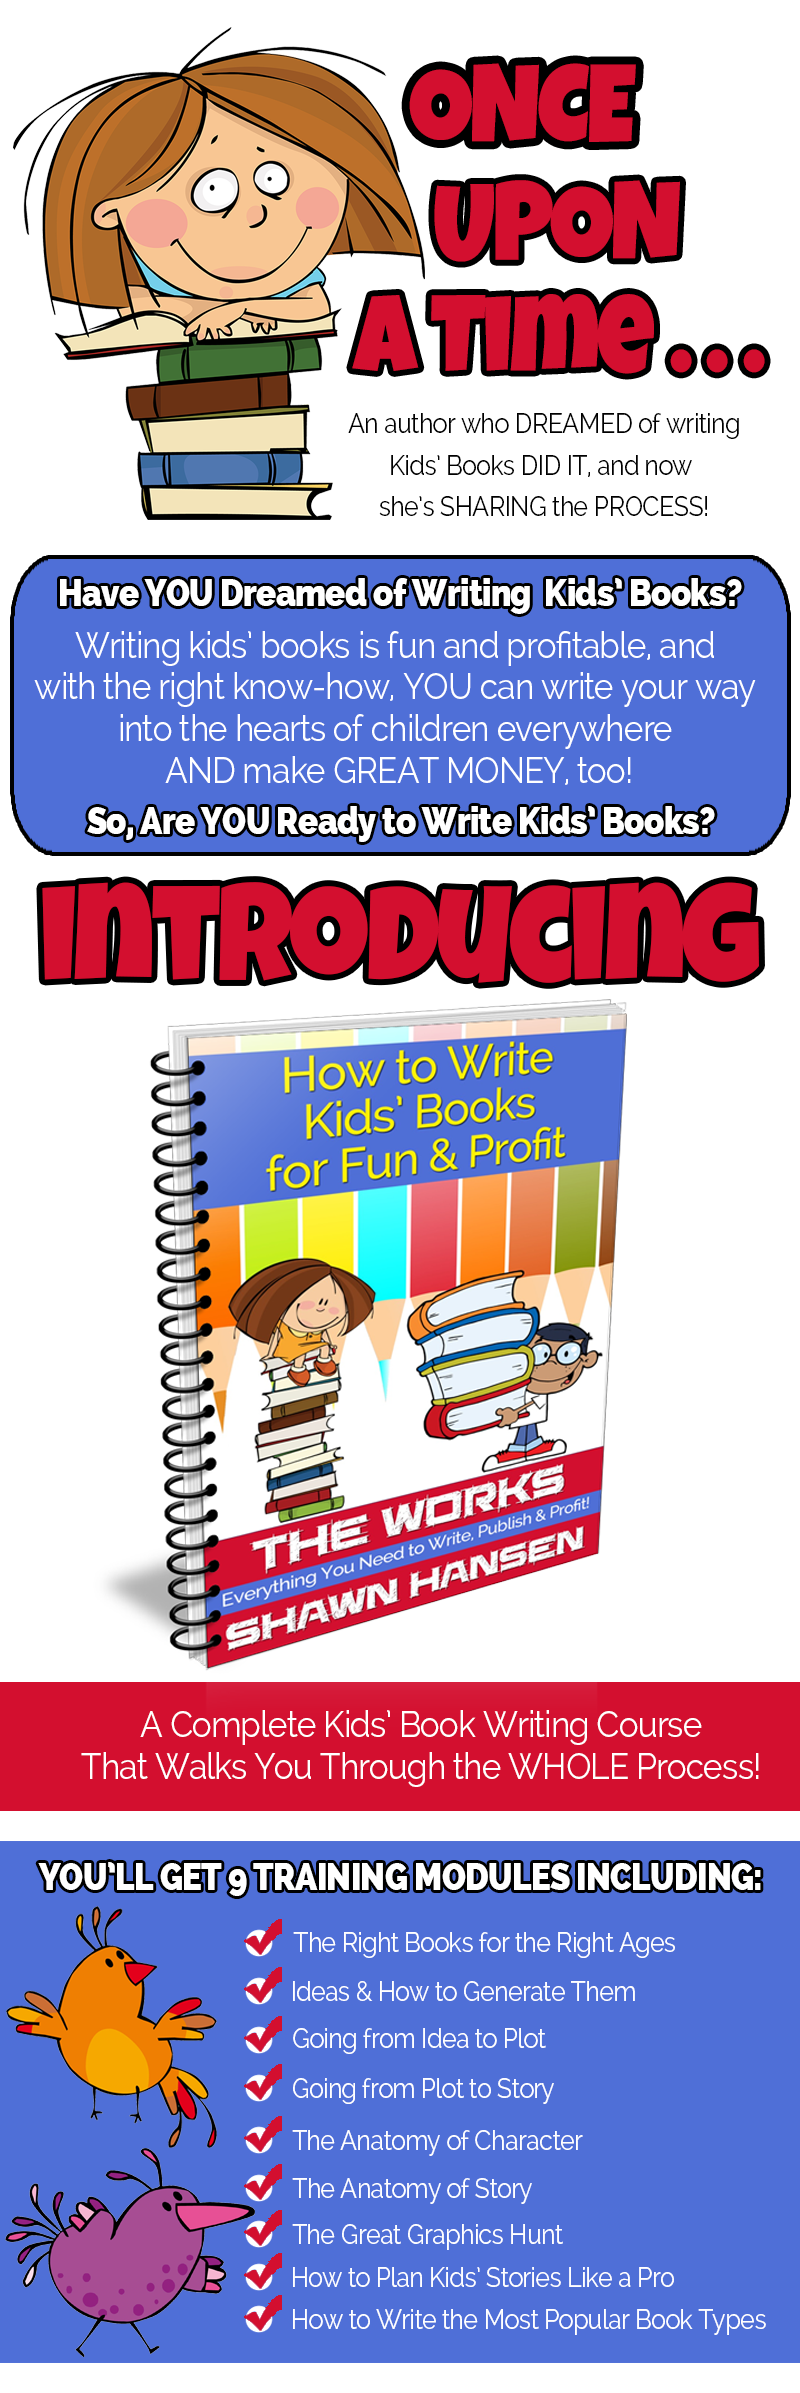 How To Write Kids Books For Fun Profit